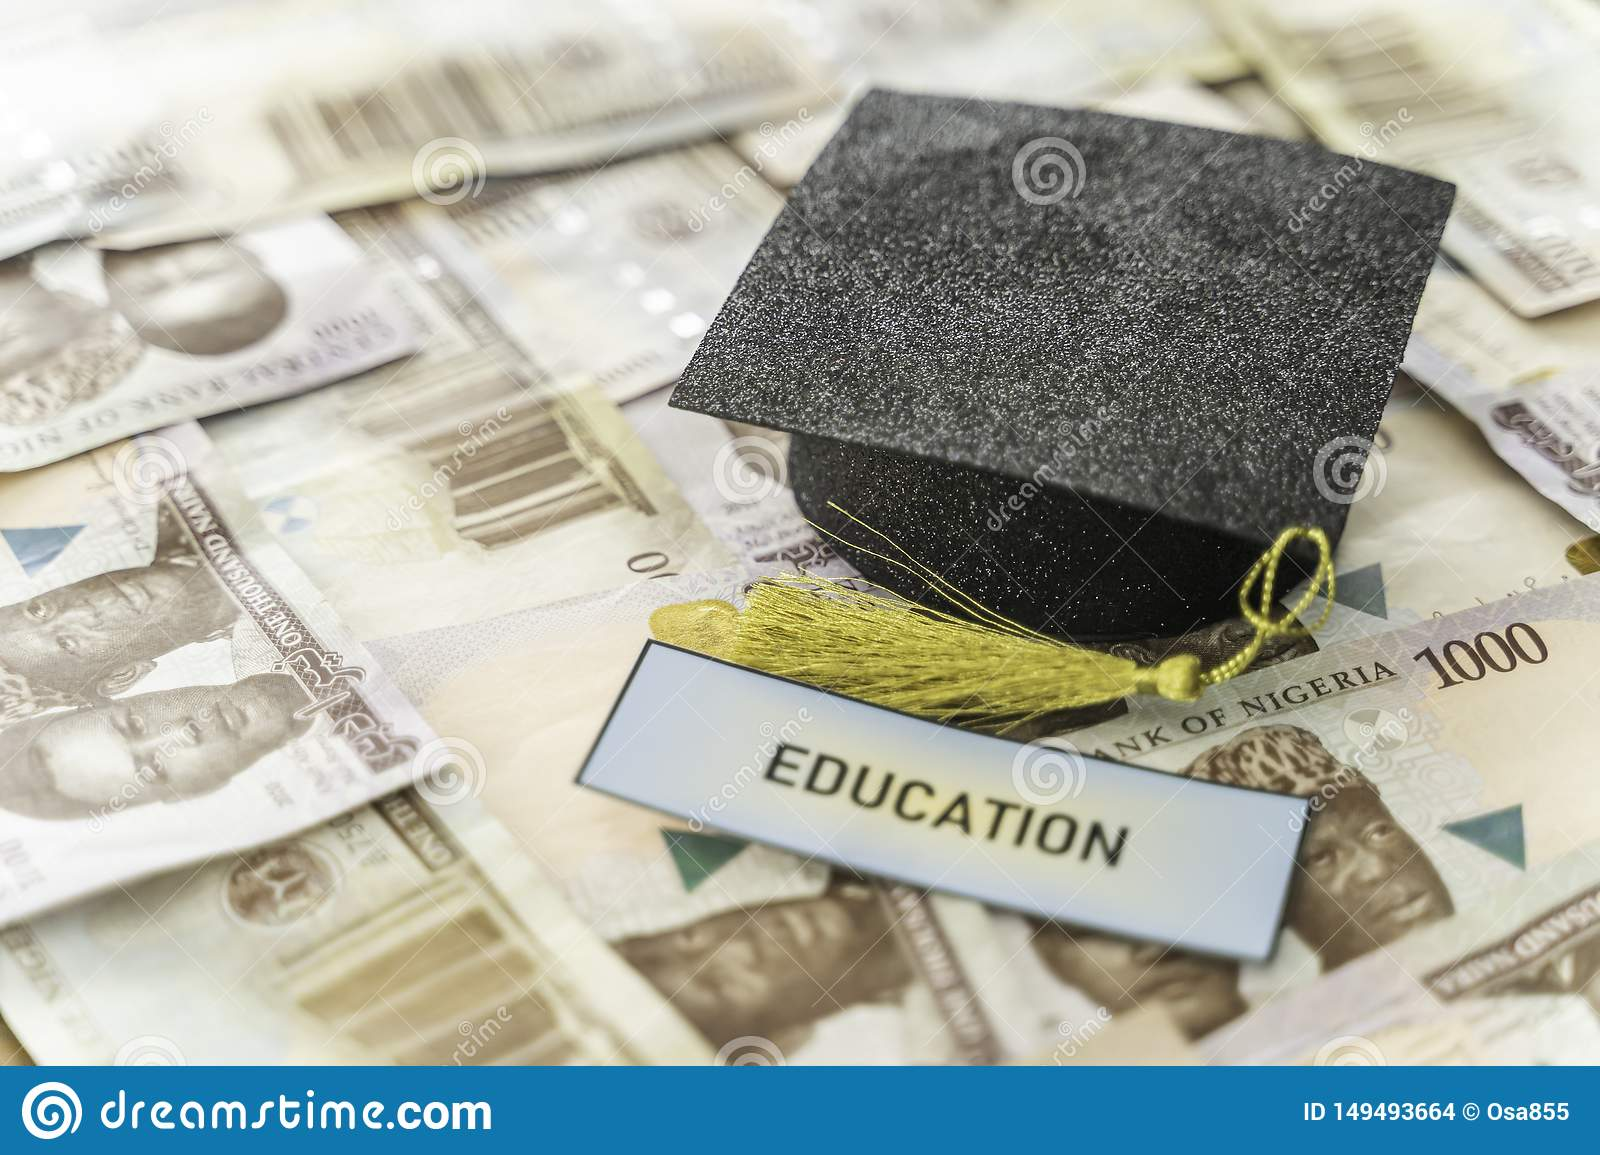 University Mortarboard academic cap on Nigerian Naira notes